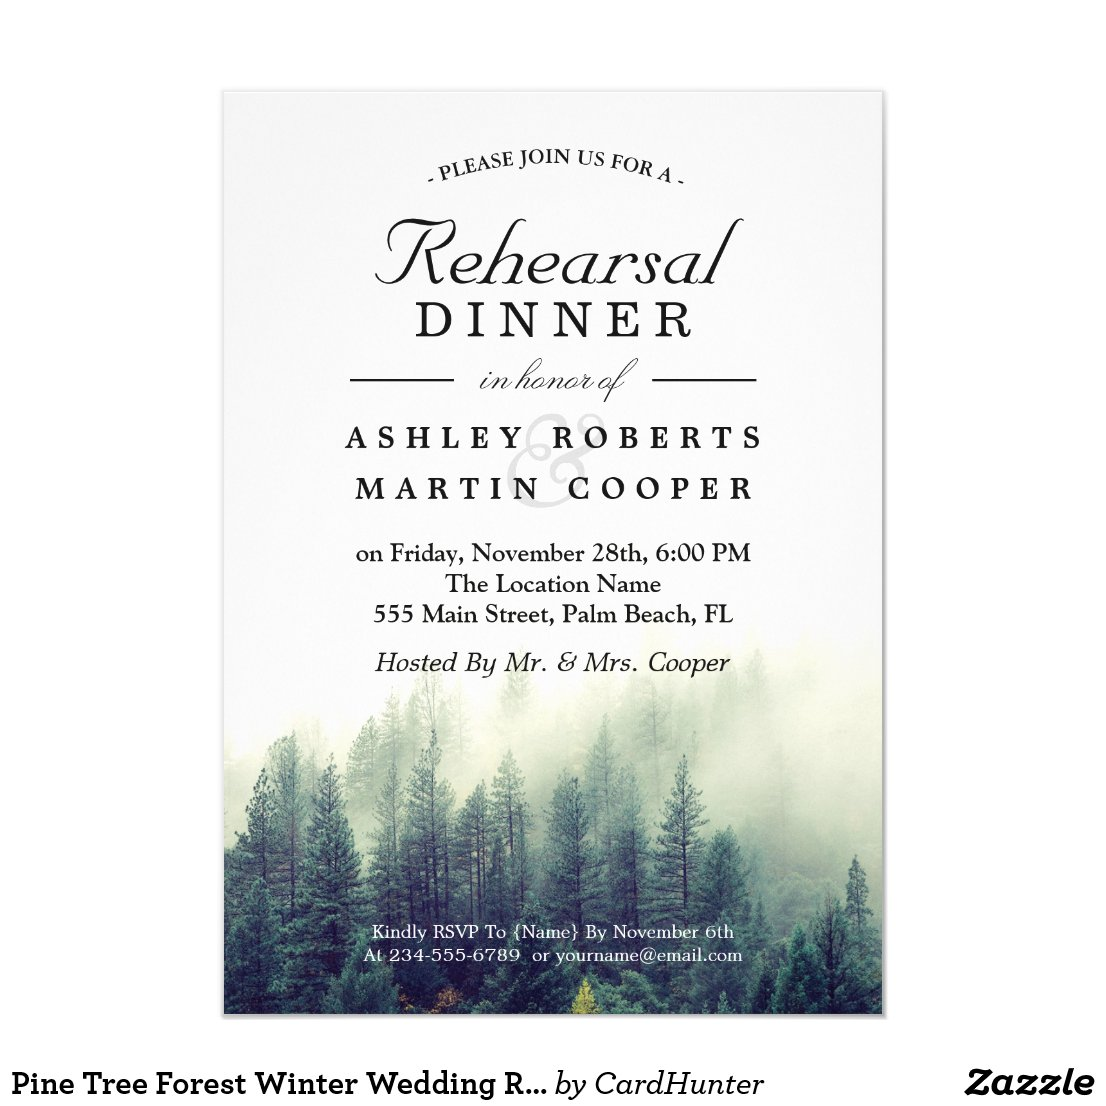 Pine Tree Forest Winter Wedding Rehearsal Dinner Invitation